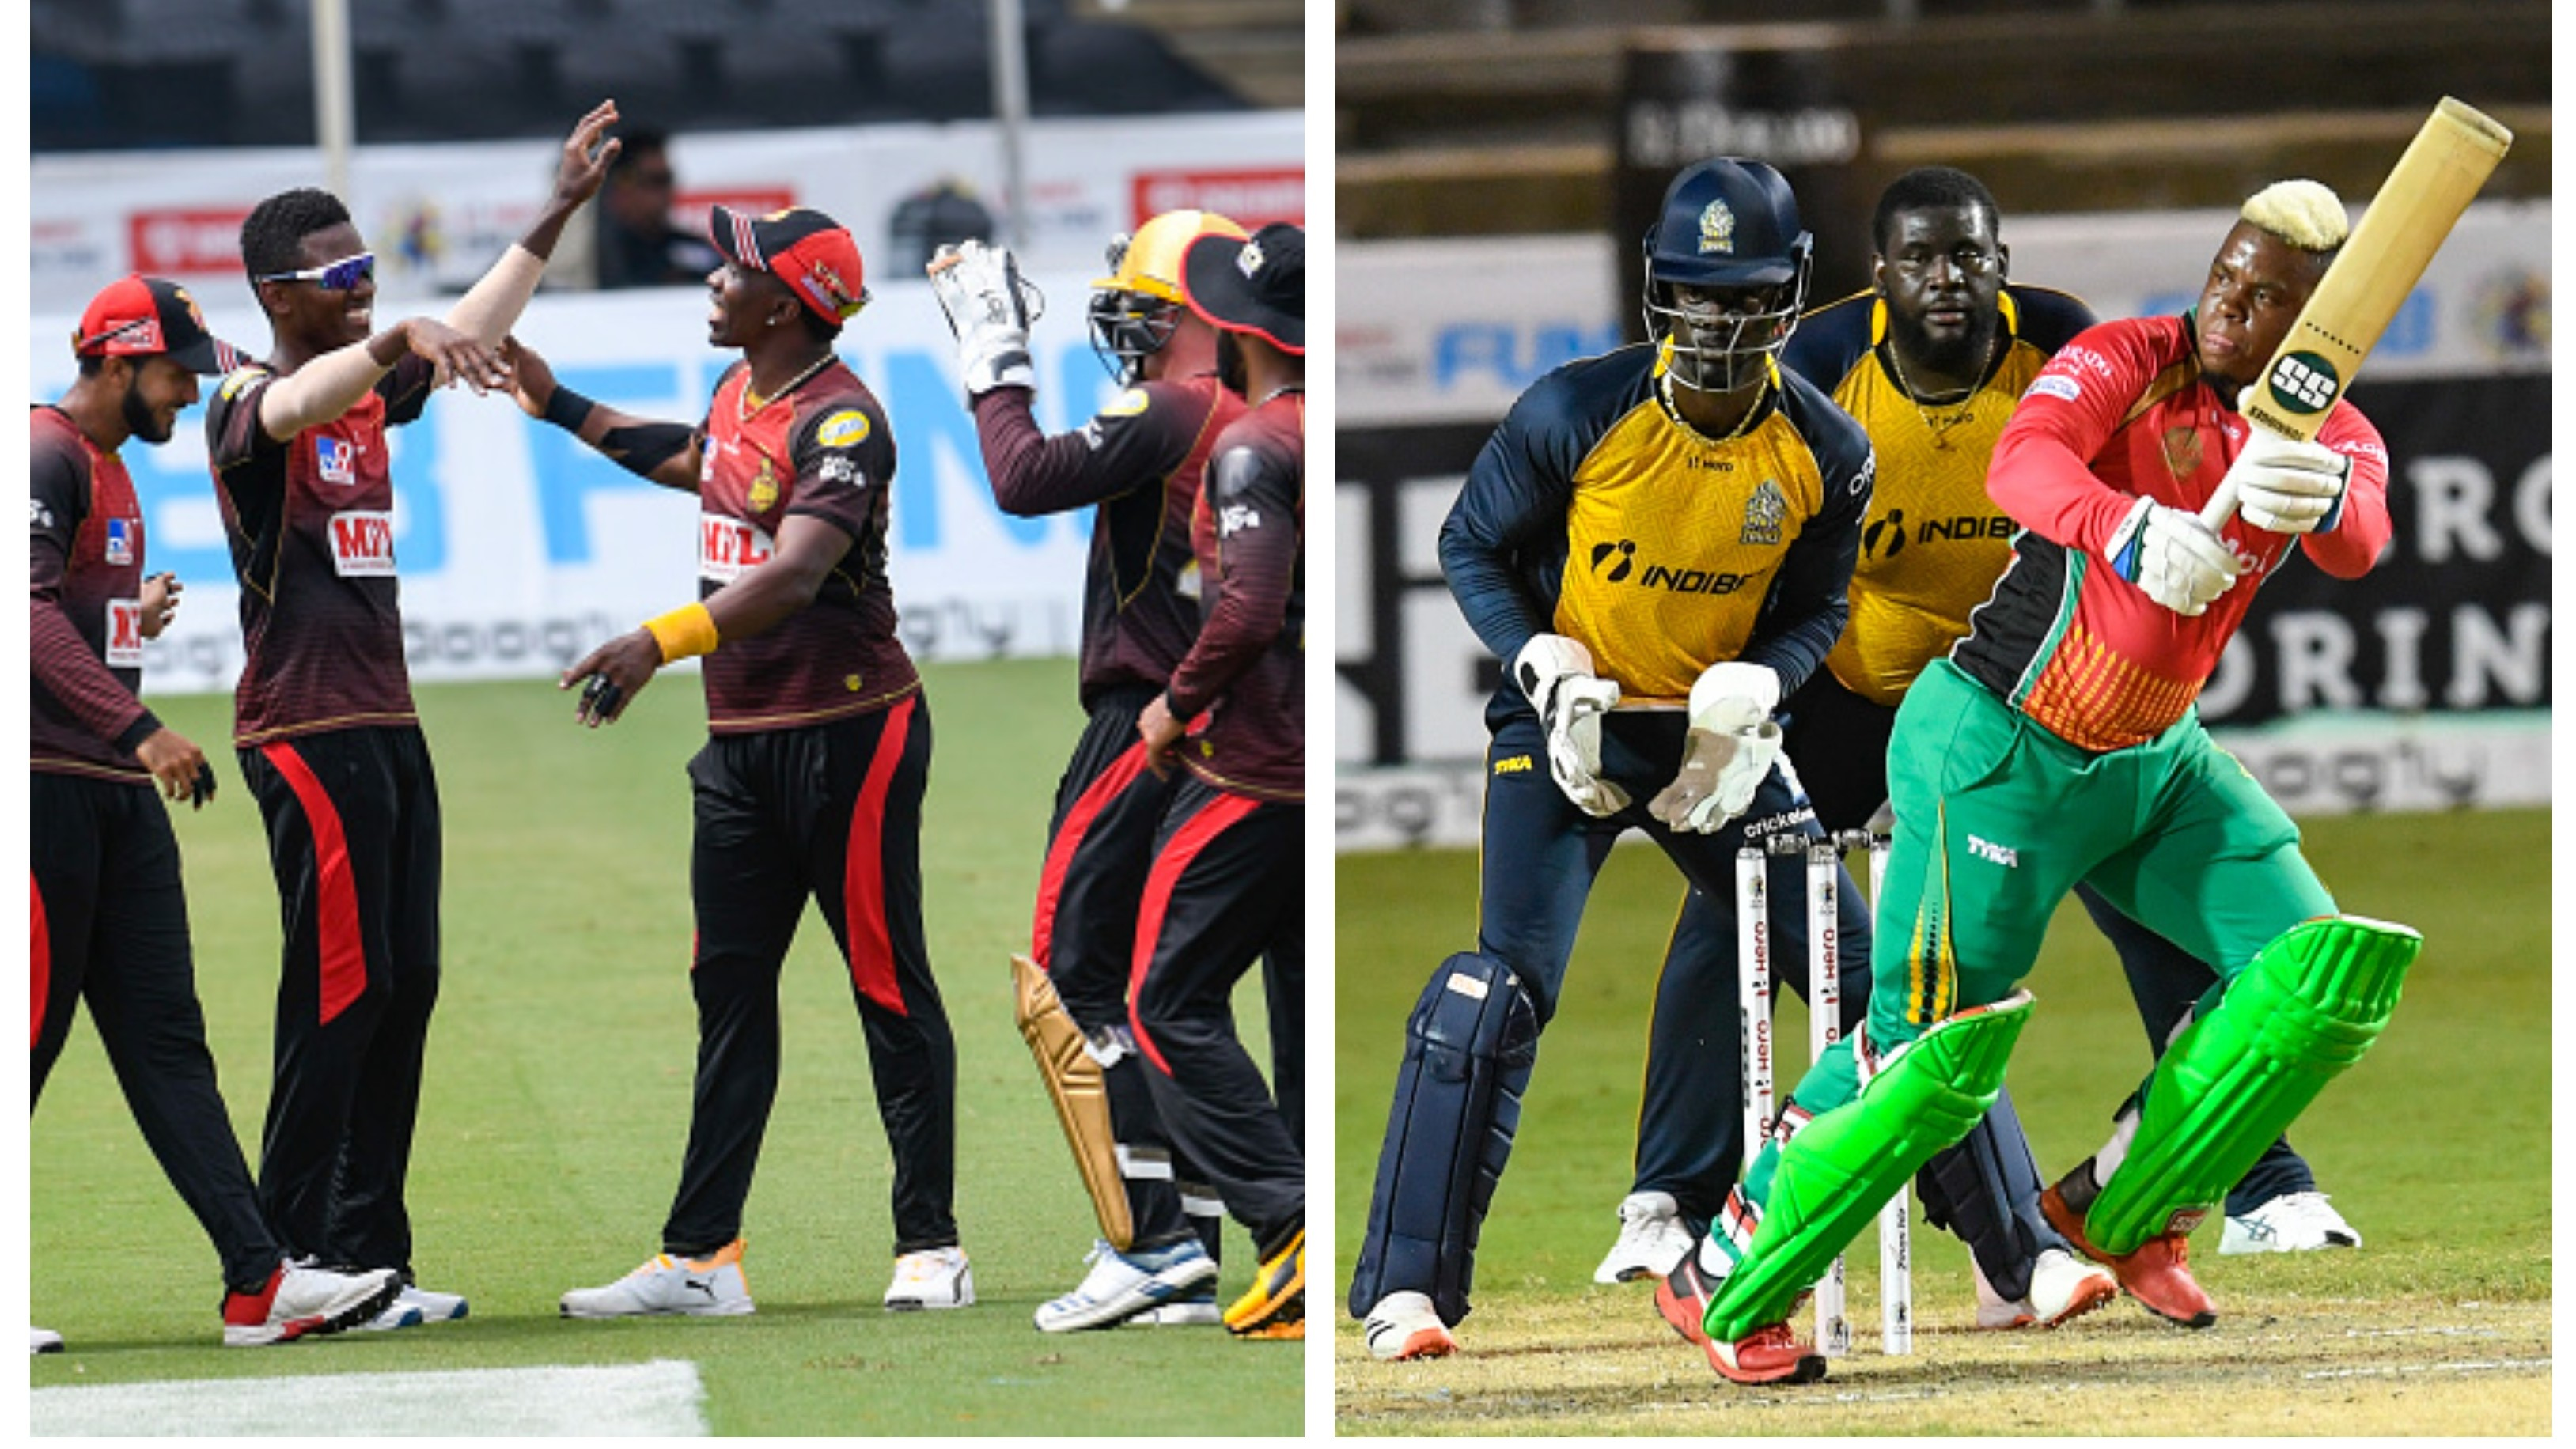 CPL 2020: Knight Riders thrash Patriots to register 8th successive win; Warriors outclass Zouks by 7 wickets